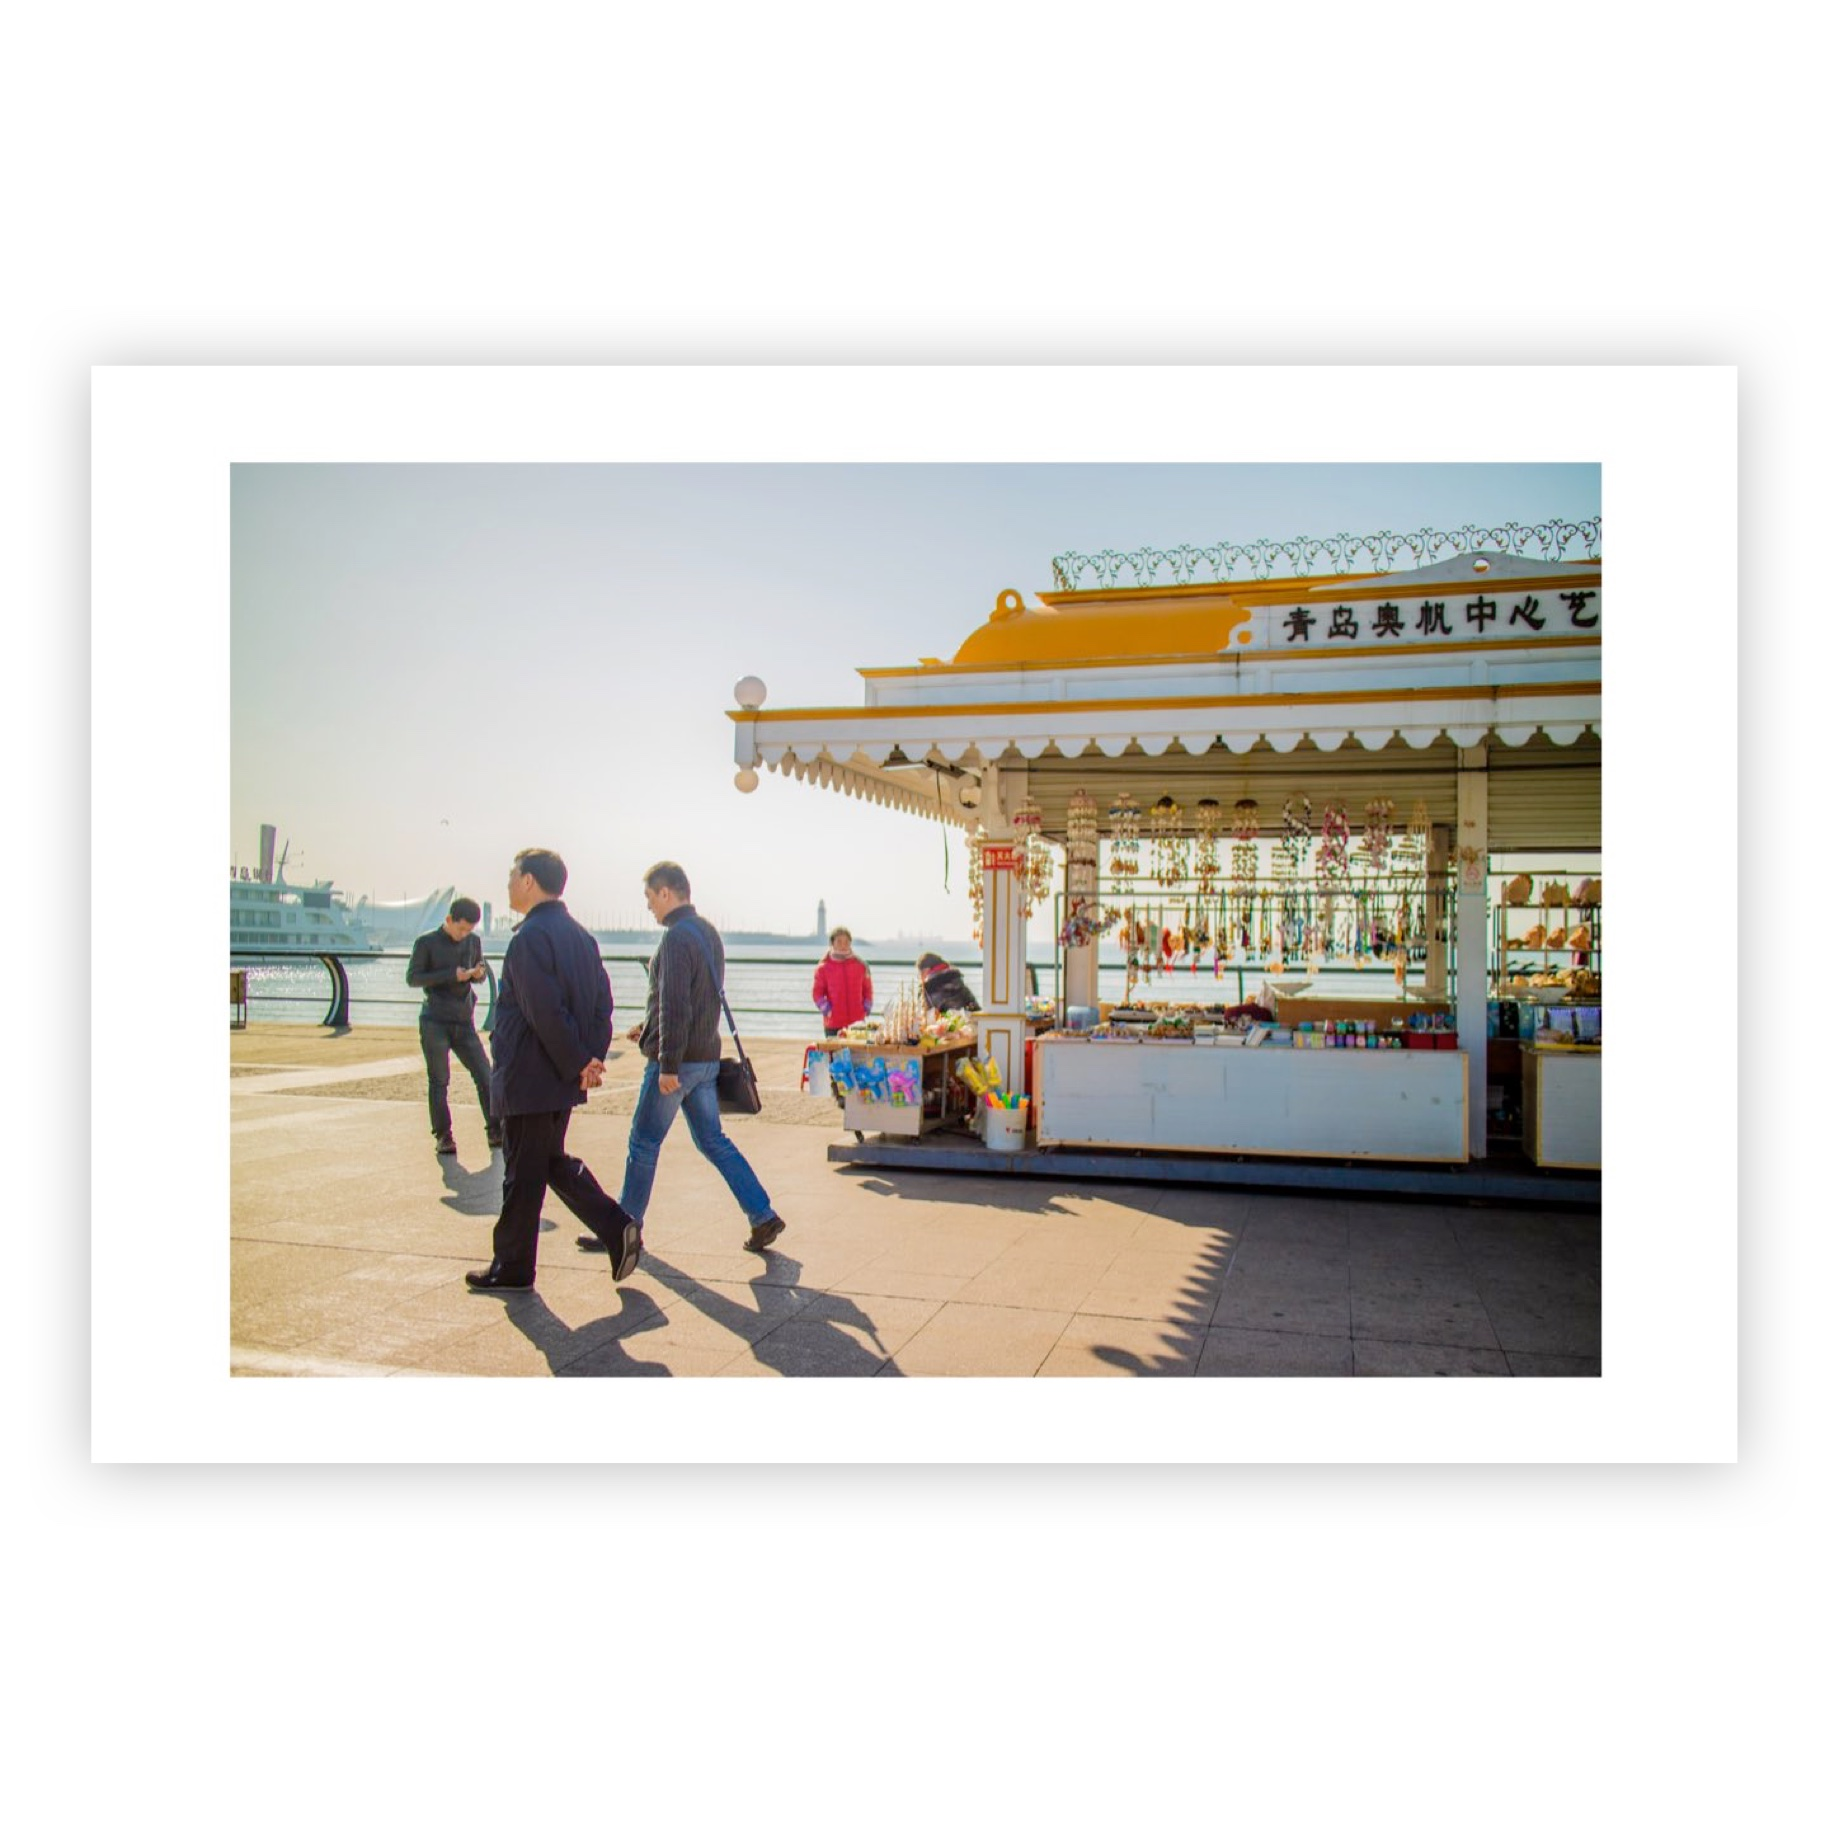 THE BOARDWALK LIMITED EDITION PRINT